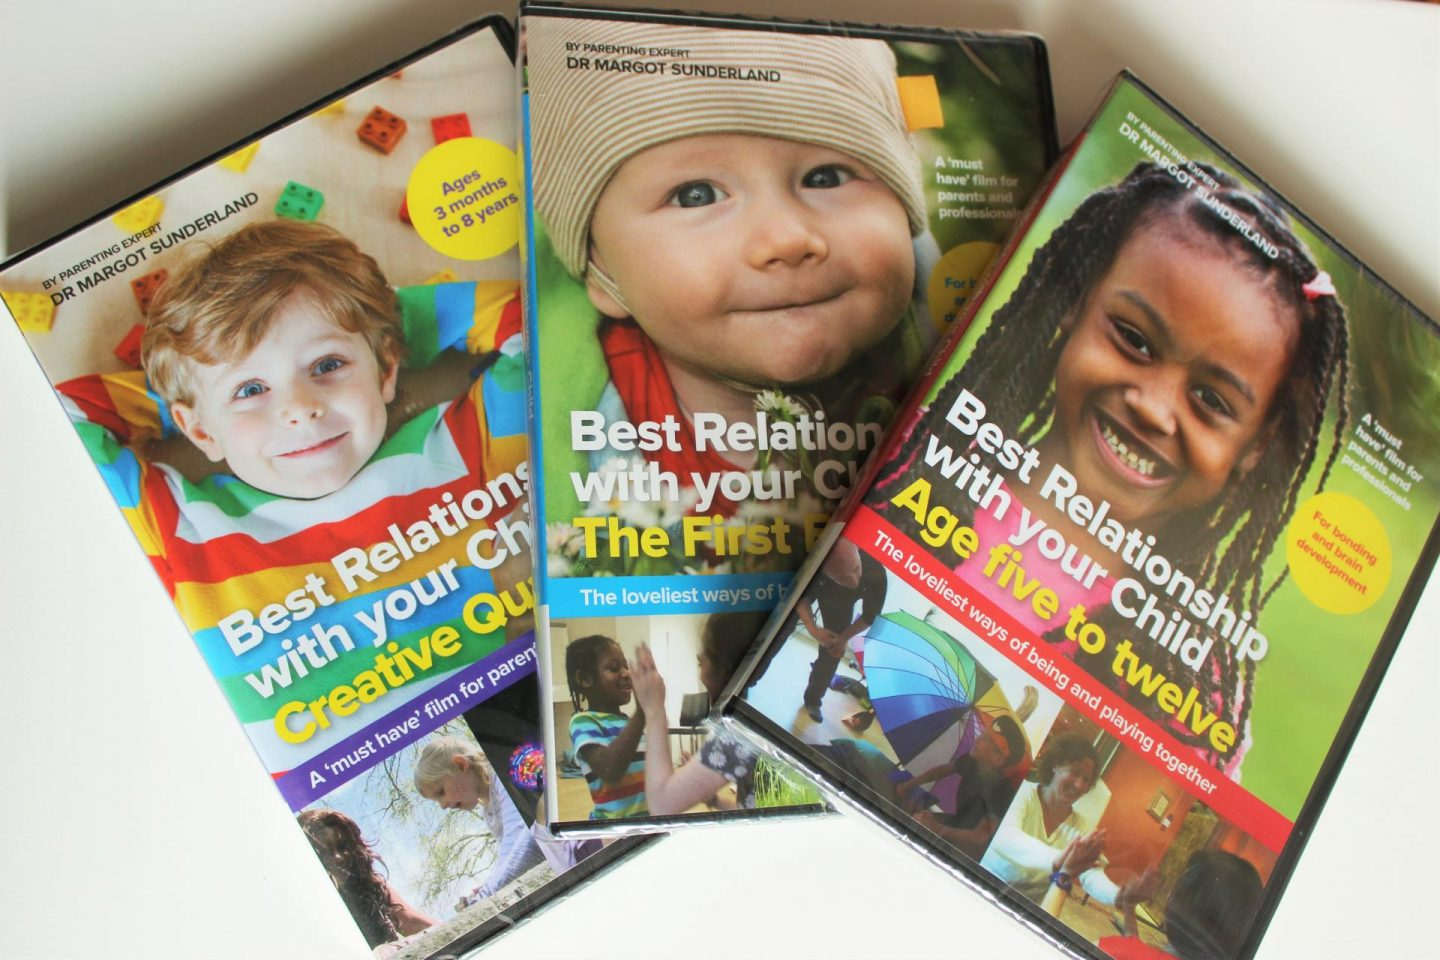 Review & Giveaway | Best Relationship with your Child DVDs